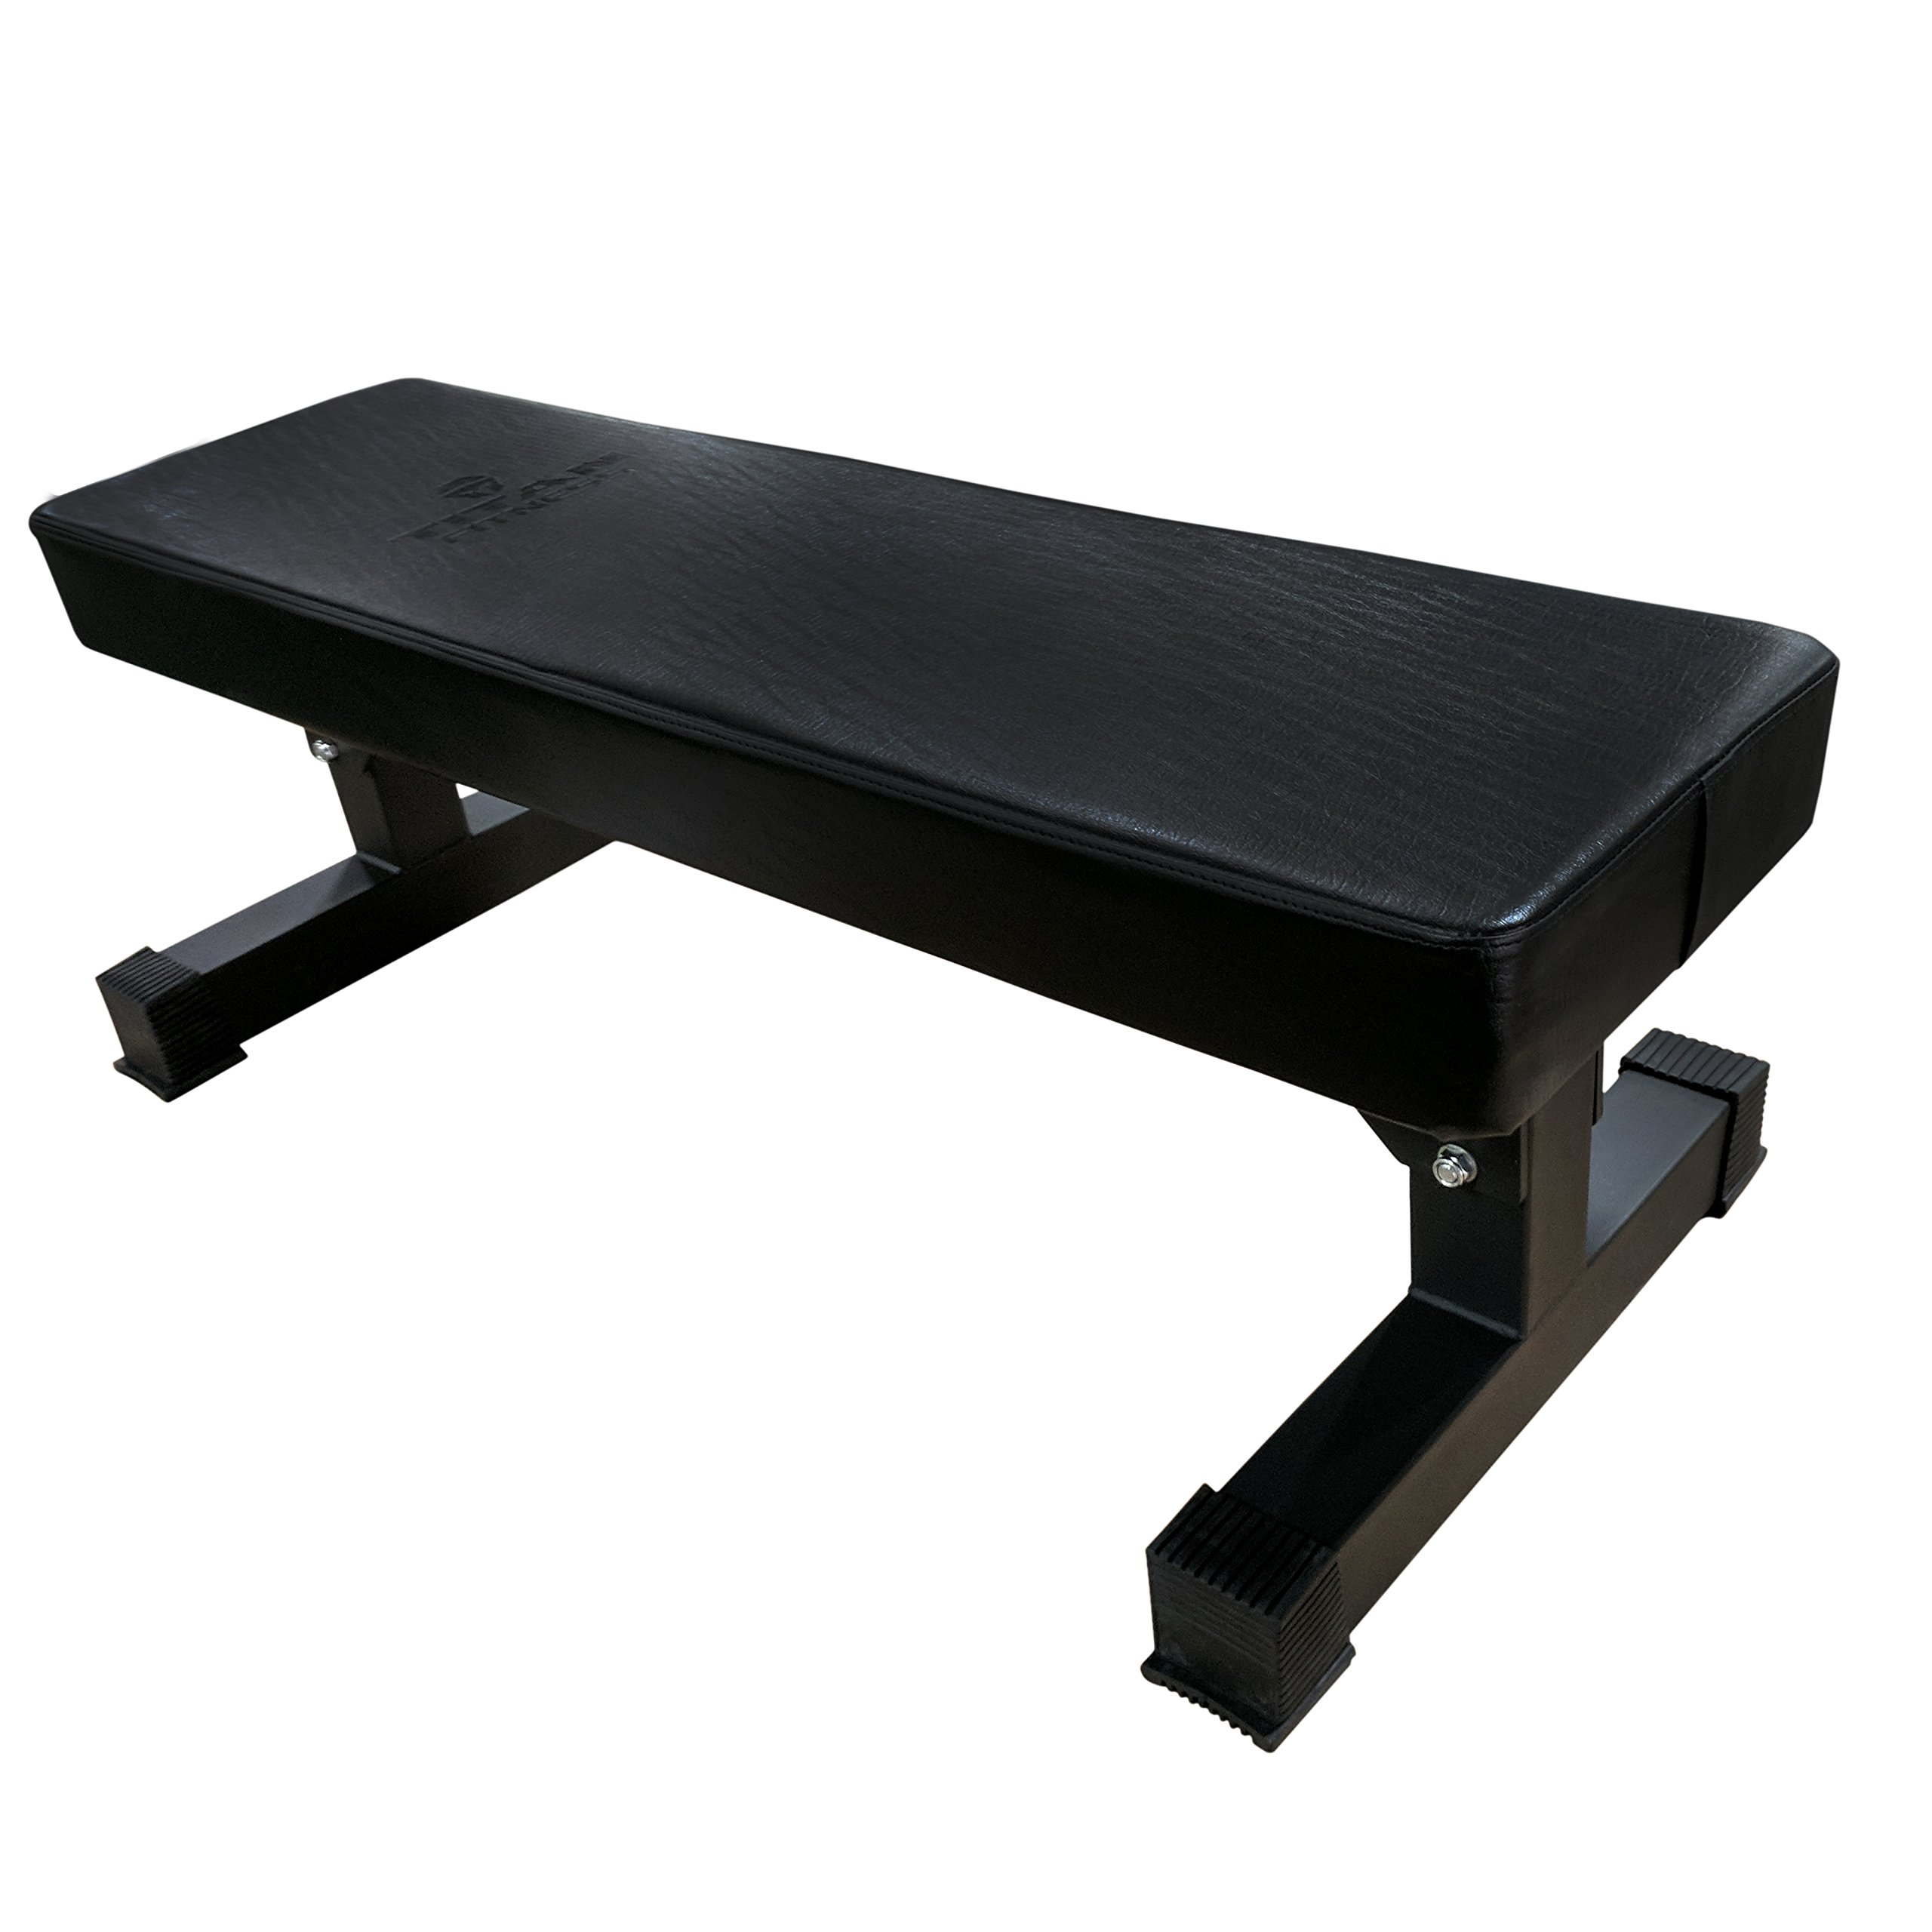 Titan Hefty Thick Pad Weight Bench - 1,200 lb Capacity